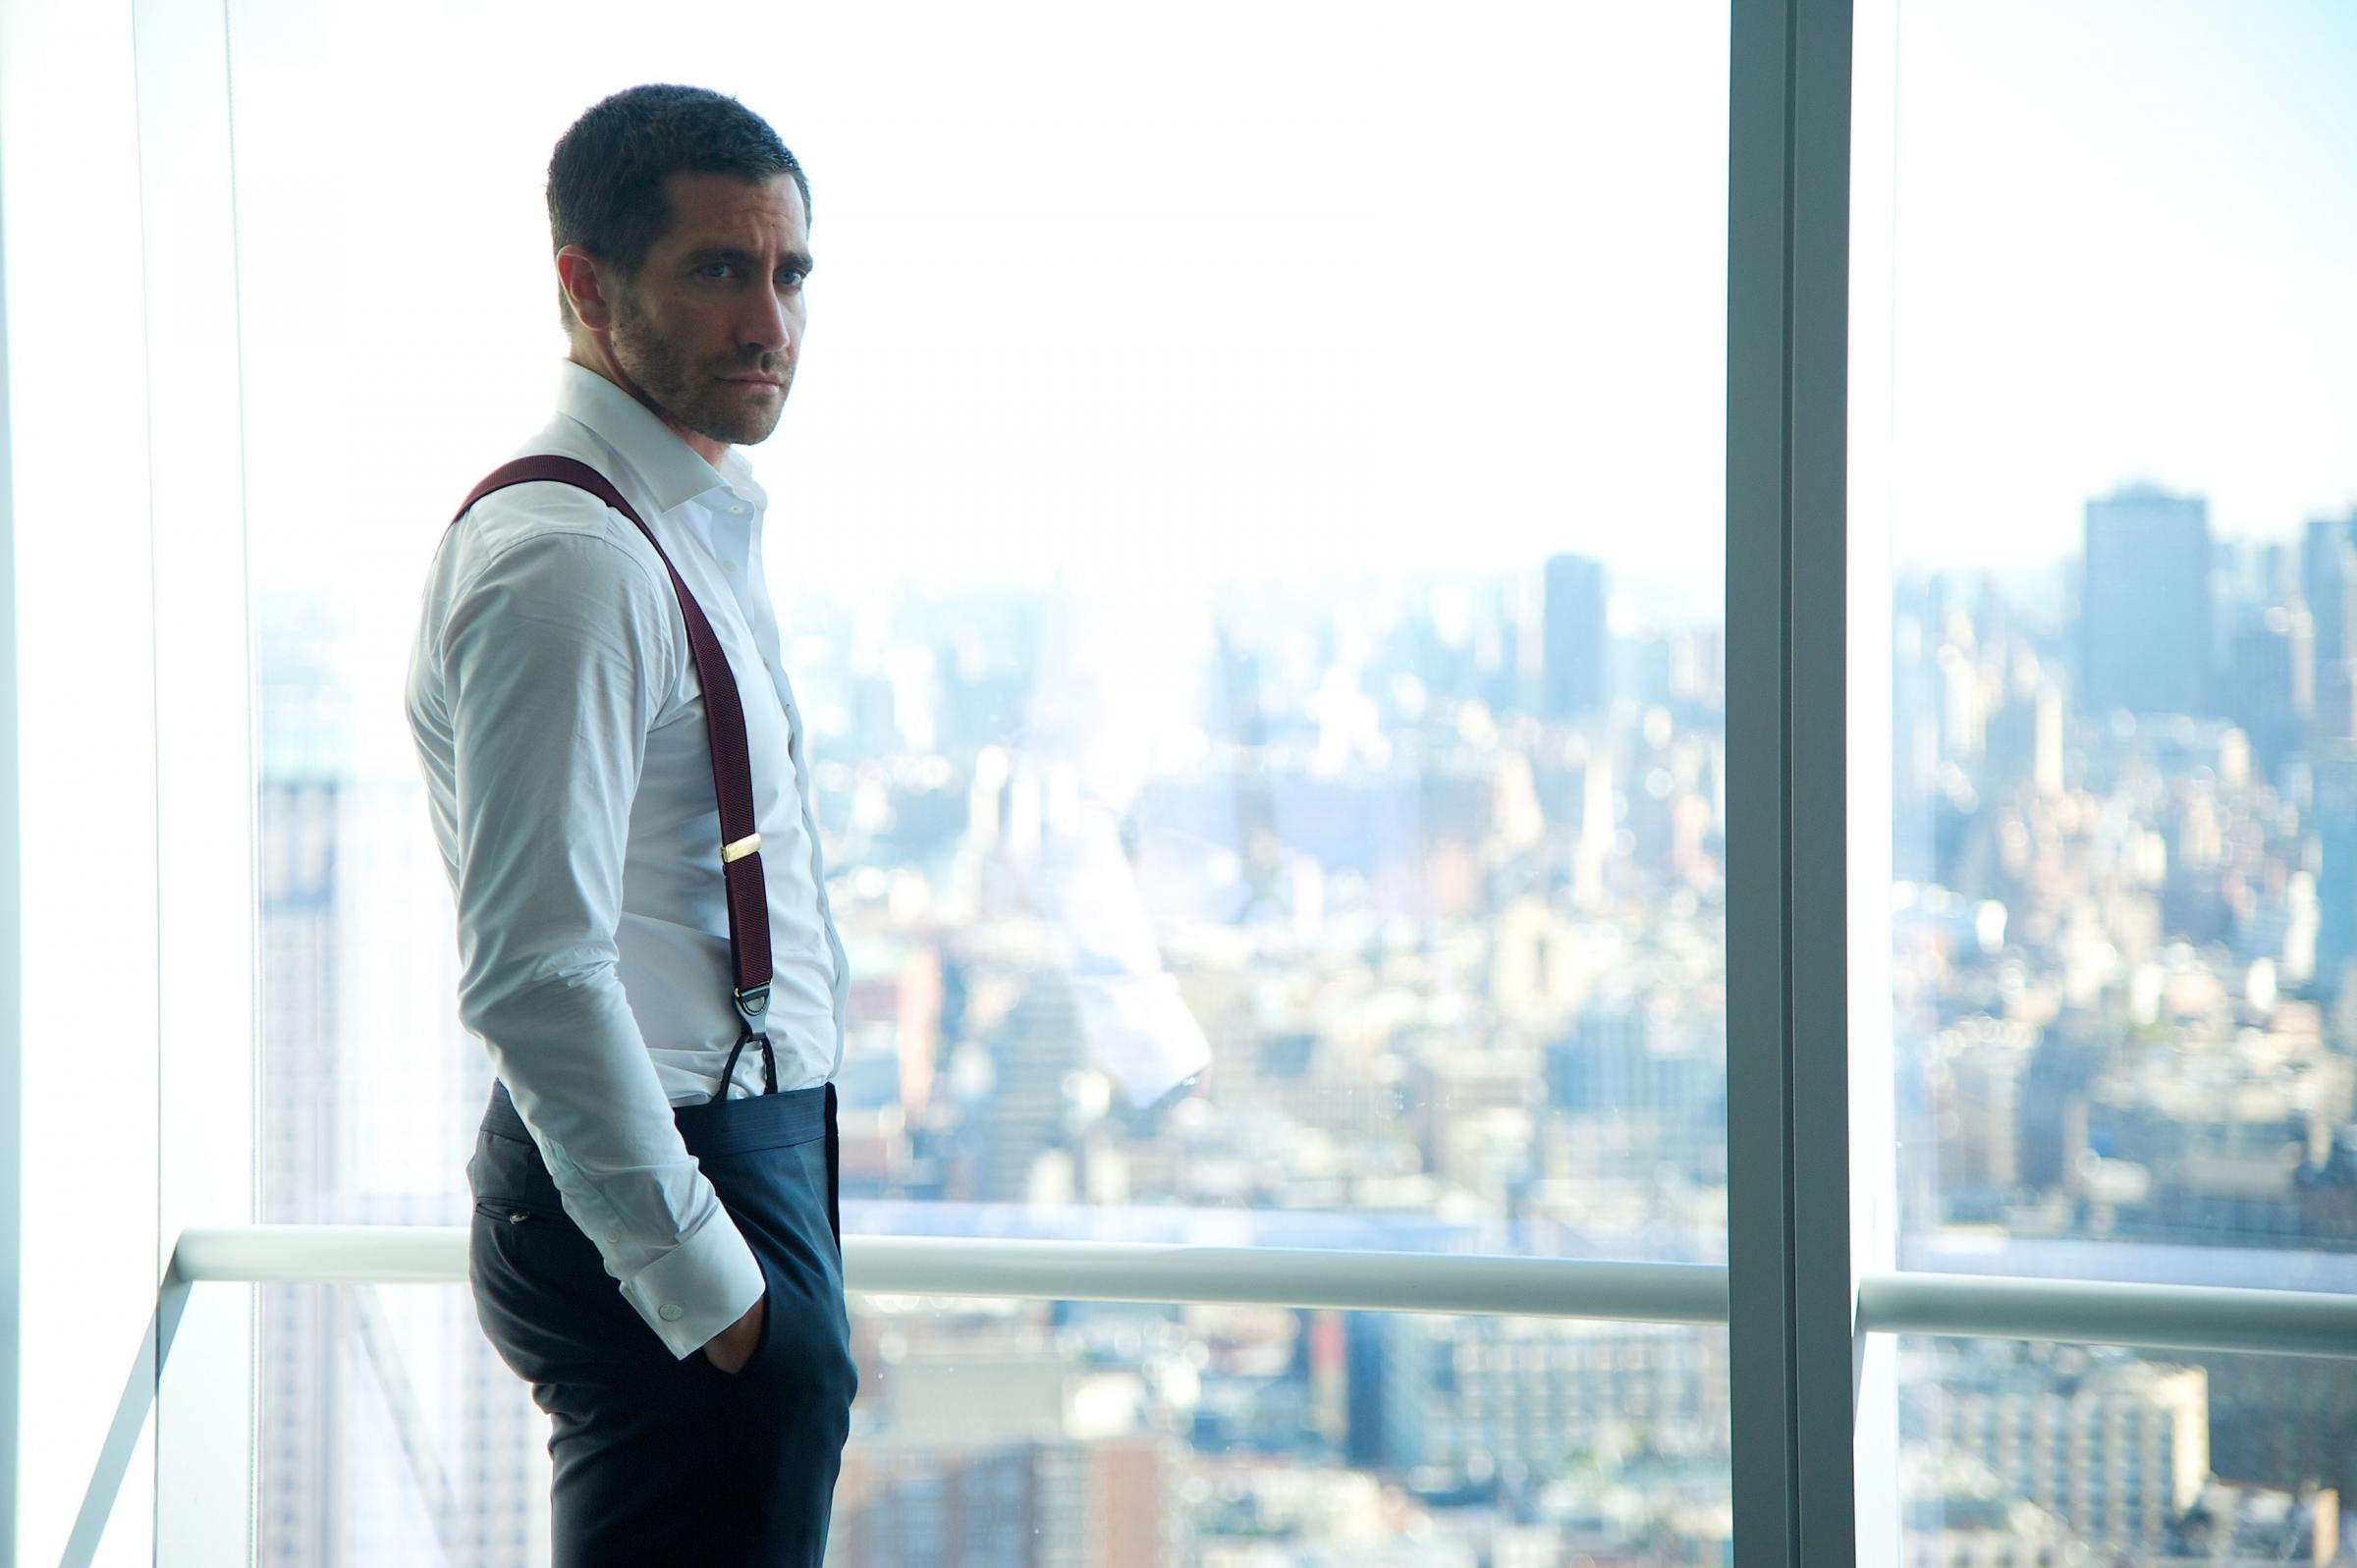 Jake Gyllenhaal as Davis in Demolition. (Photo by Anne Marie Fox)